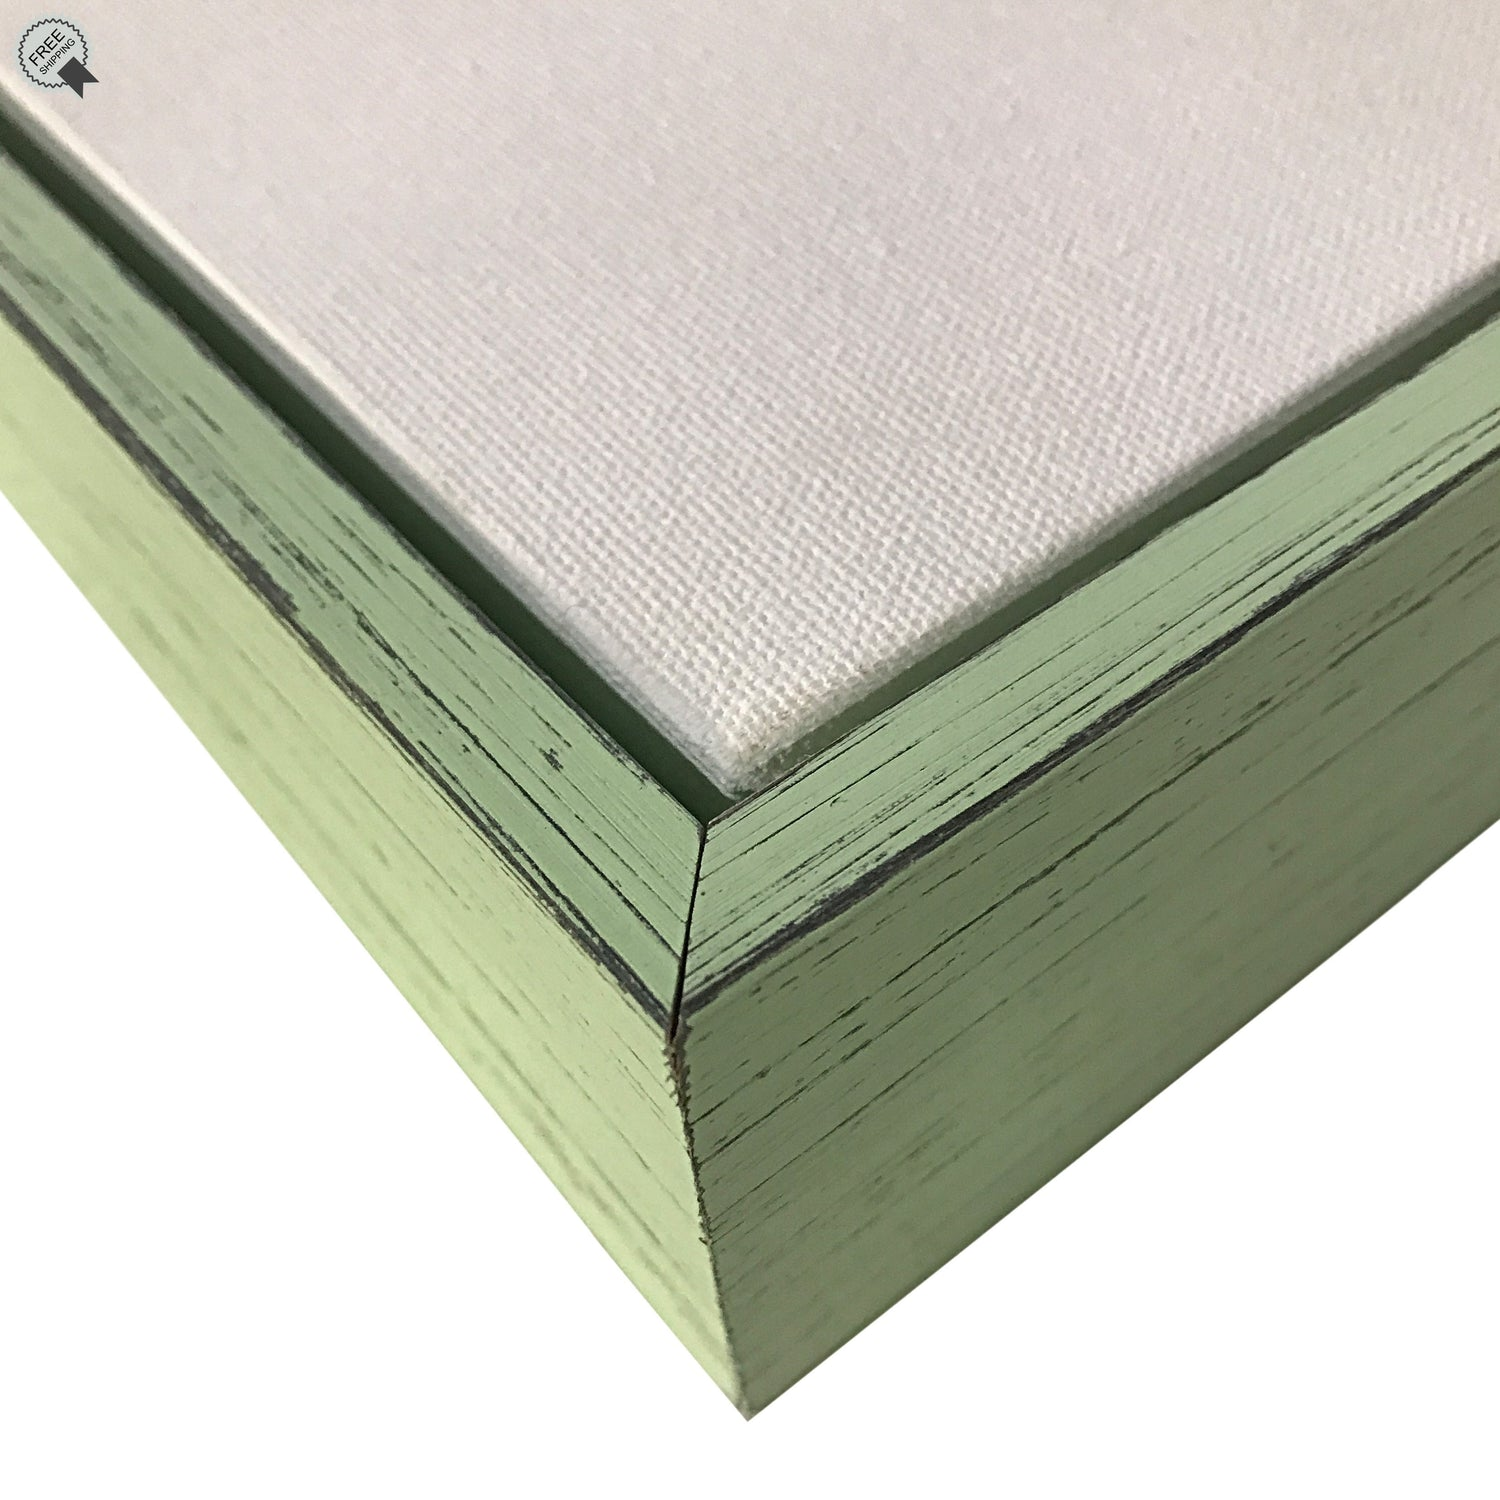 "Country Mint Floater frame 2"" deep profile, for 1.5"" Canvas, (Different Sizes)--Sunbelt Mfg. Co."